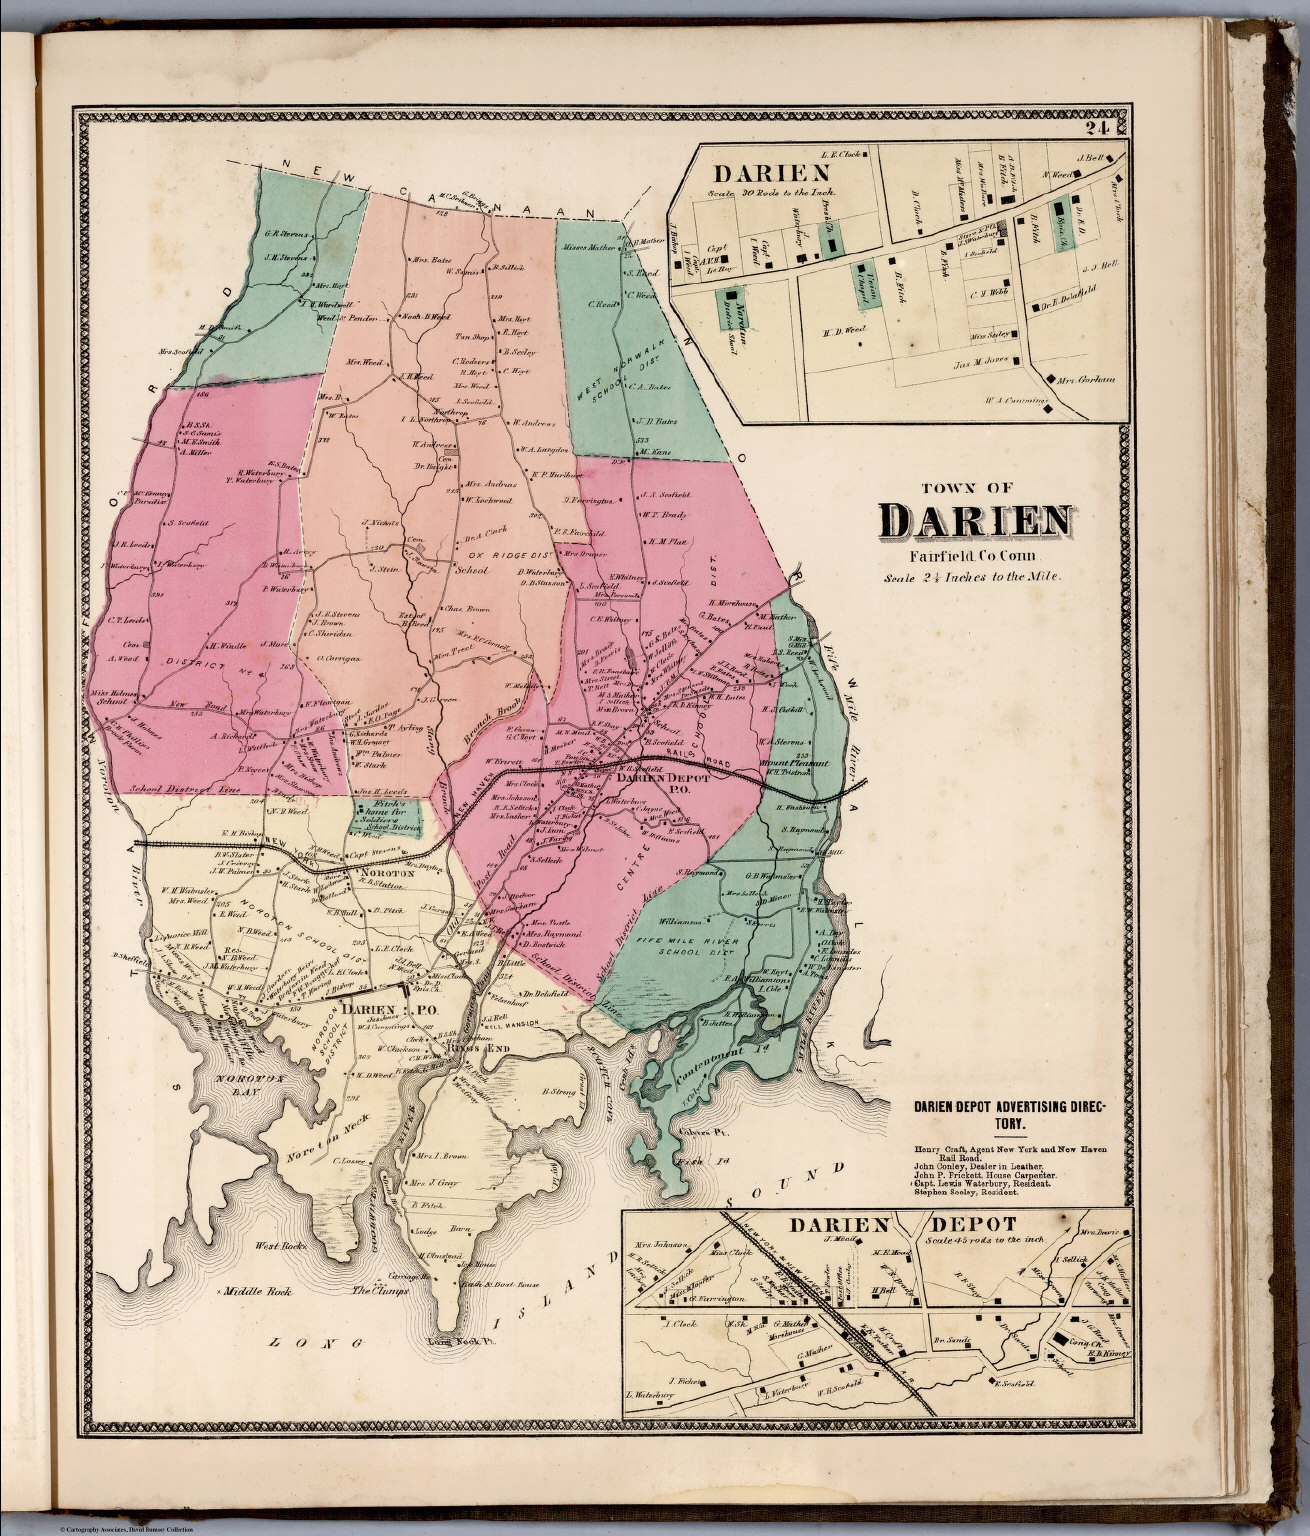 Town of Darien, Fairfield County, Connecticut. (inset ... Map Fairfield County Ct on new haven county, farmington ct map, hartford ct map, fairfield ct zip code map, johnsonville ct map, area code 203 ct map, middlesex county, fairfield ct on a map, hartford county, stamford ct map, fairfield connecticut, orange county ct map, northampton ct map, new london county ct map, massachusetts map, franklin county ct map, litchfield county, middlesex county ct map, bergen county, rockland county, windham county ct map, fairfield university, new london ct street map, dutchess county, pleasure beach, westchester county ny map, fairfield university ct map, putnam county, greenwich ct map, westchester county ct map, westchester county, new canaan,